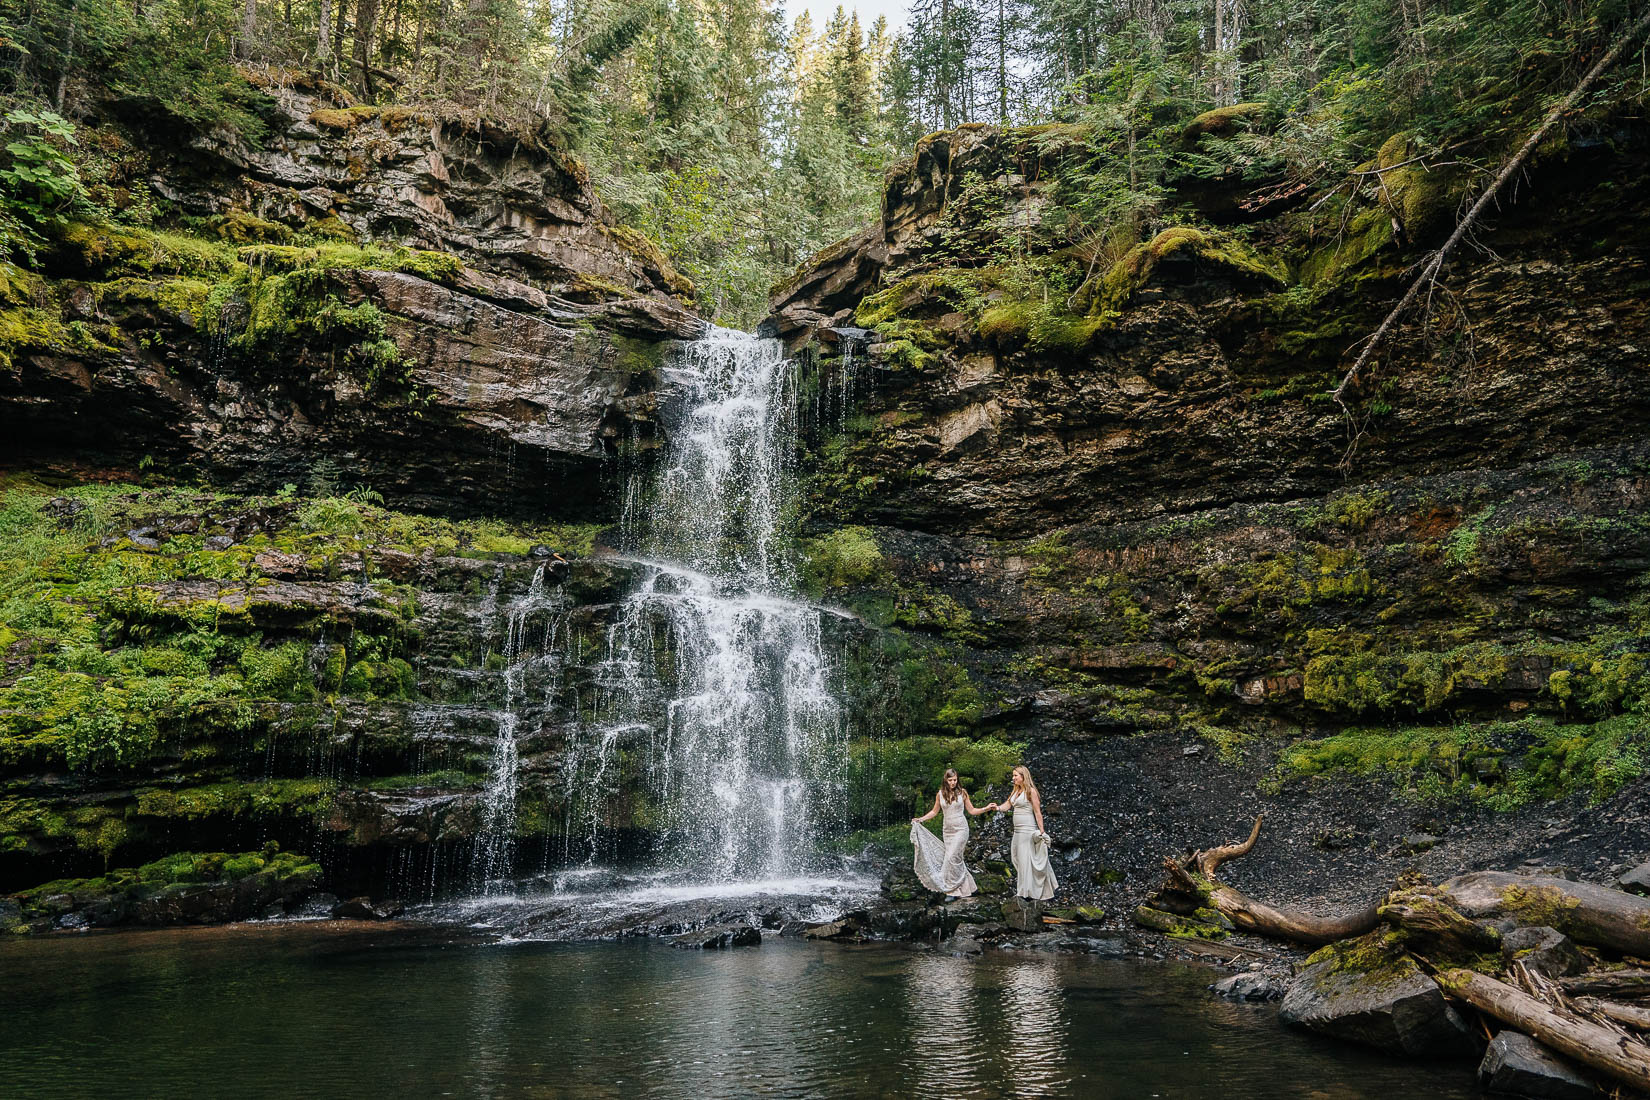 waterfall brides together